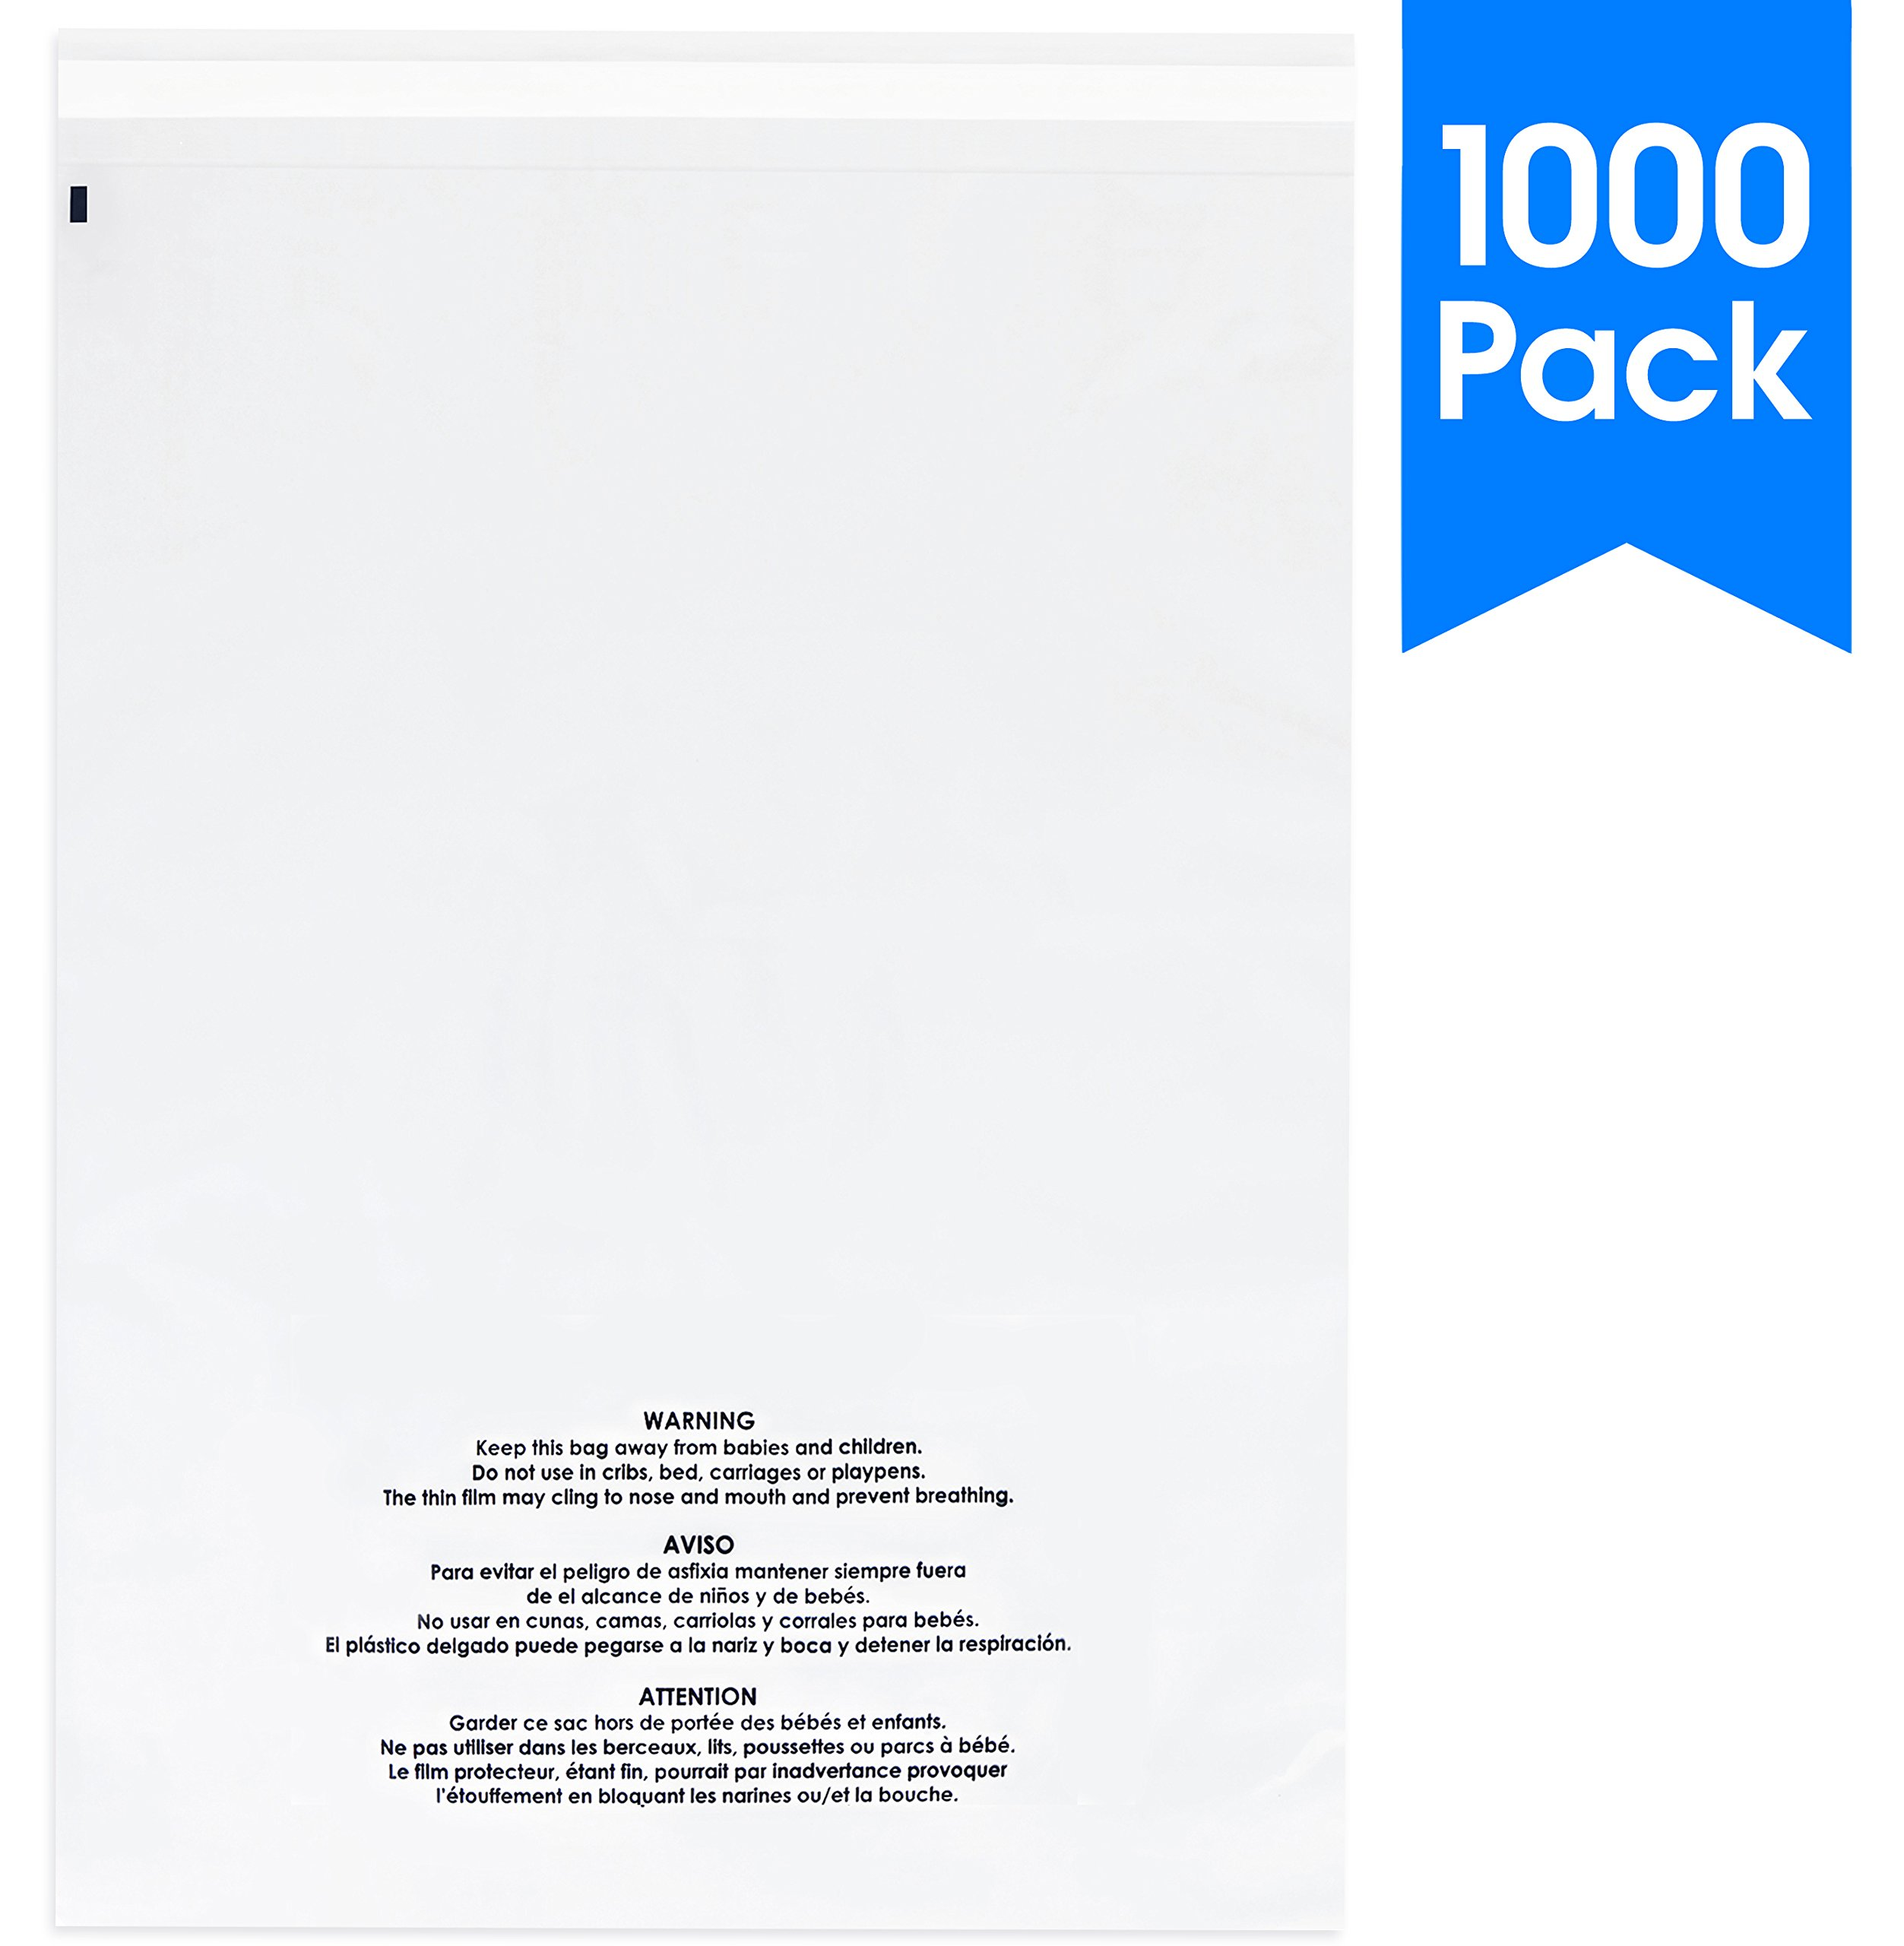 1000 Count - 9 X 12 Self Seal 1.5 Mil Clear Plastic Poly Bags with Suffocation Warning - Permanent Adhesive by Spartan Industrial (More Sizes Available) by Spartan Industrial